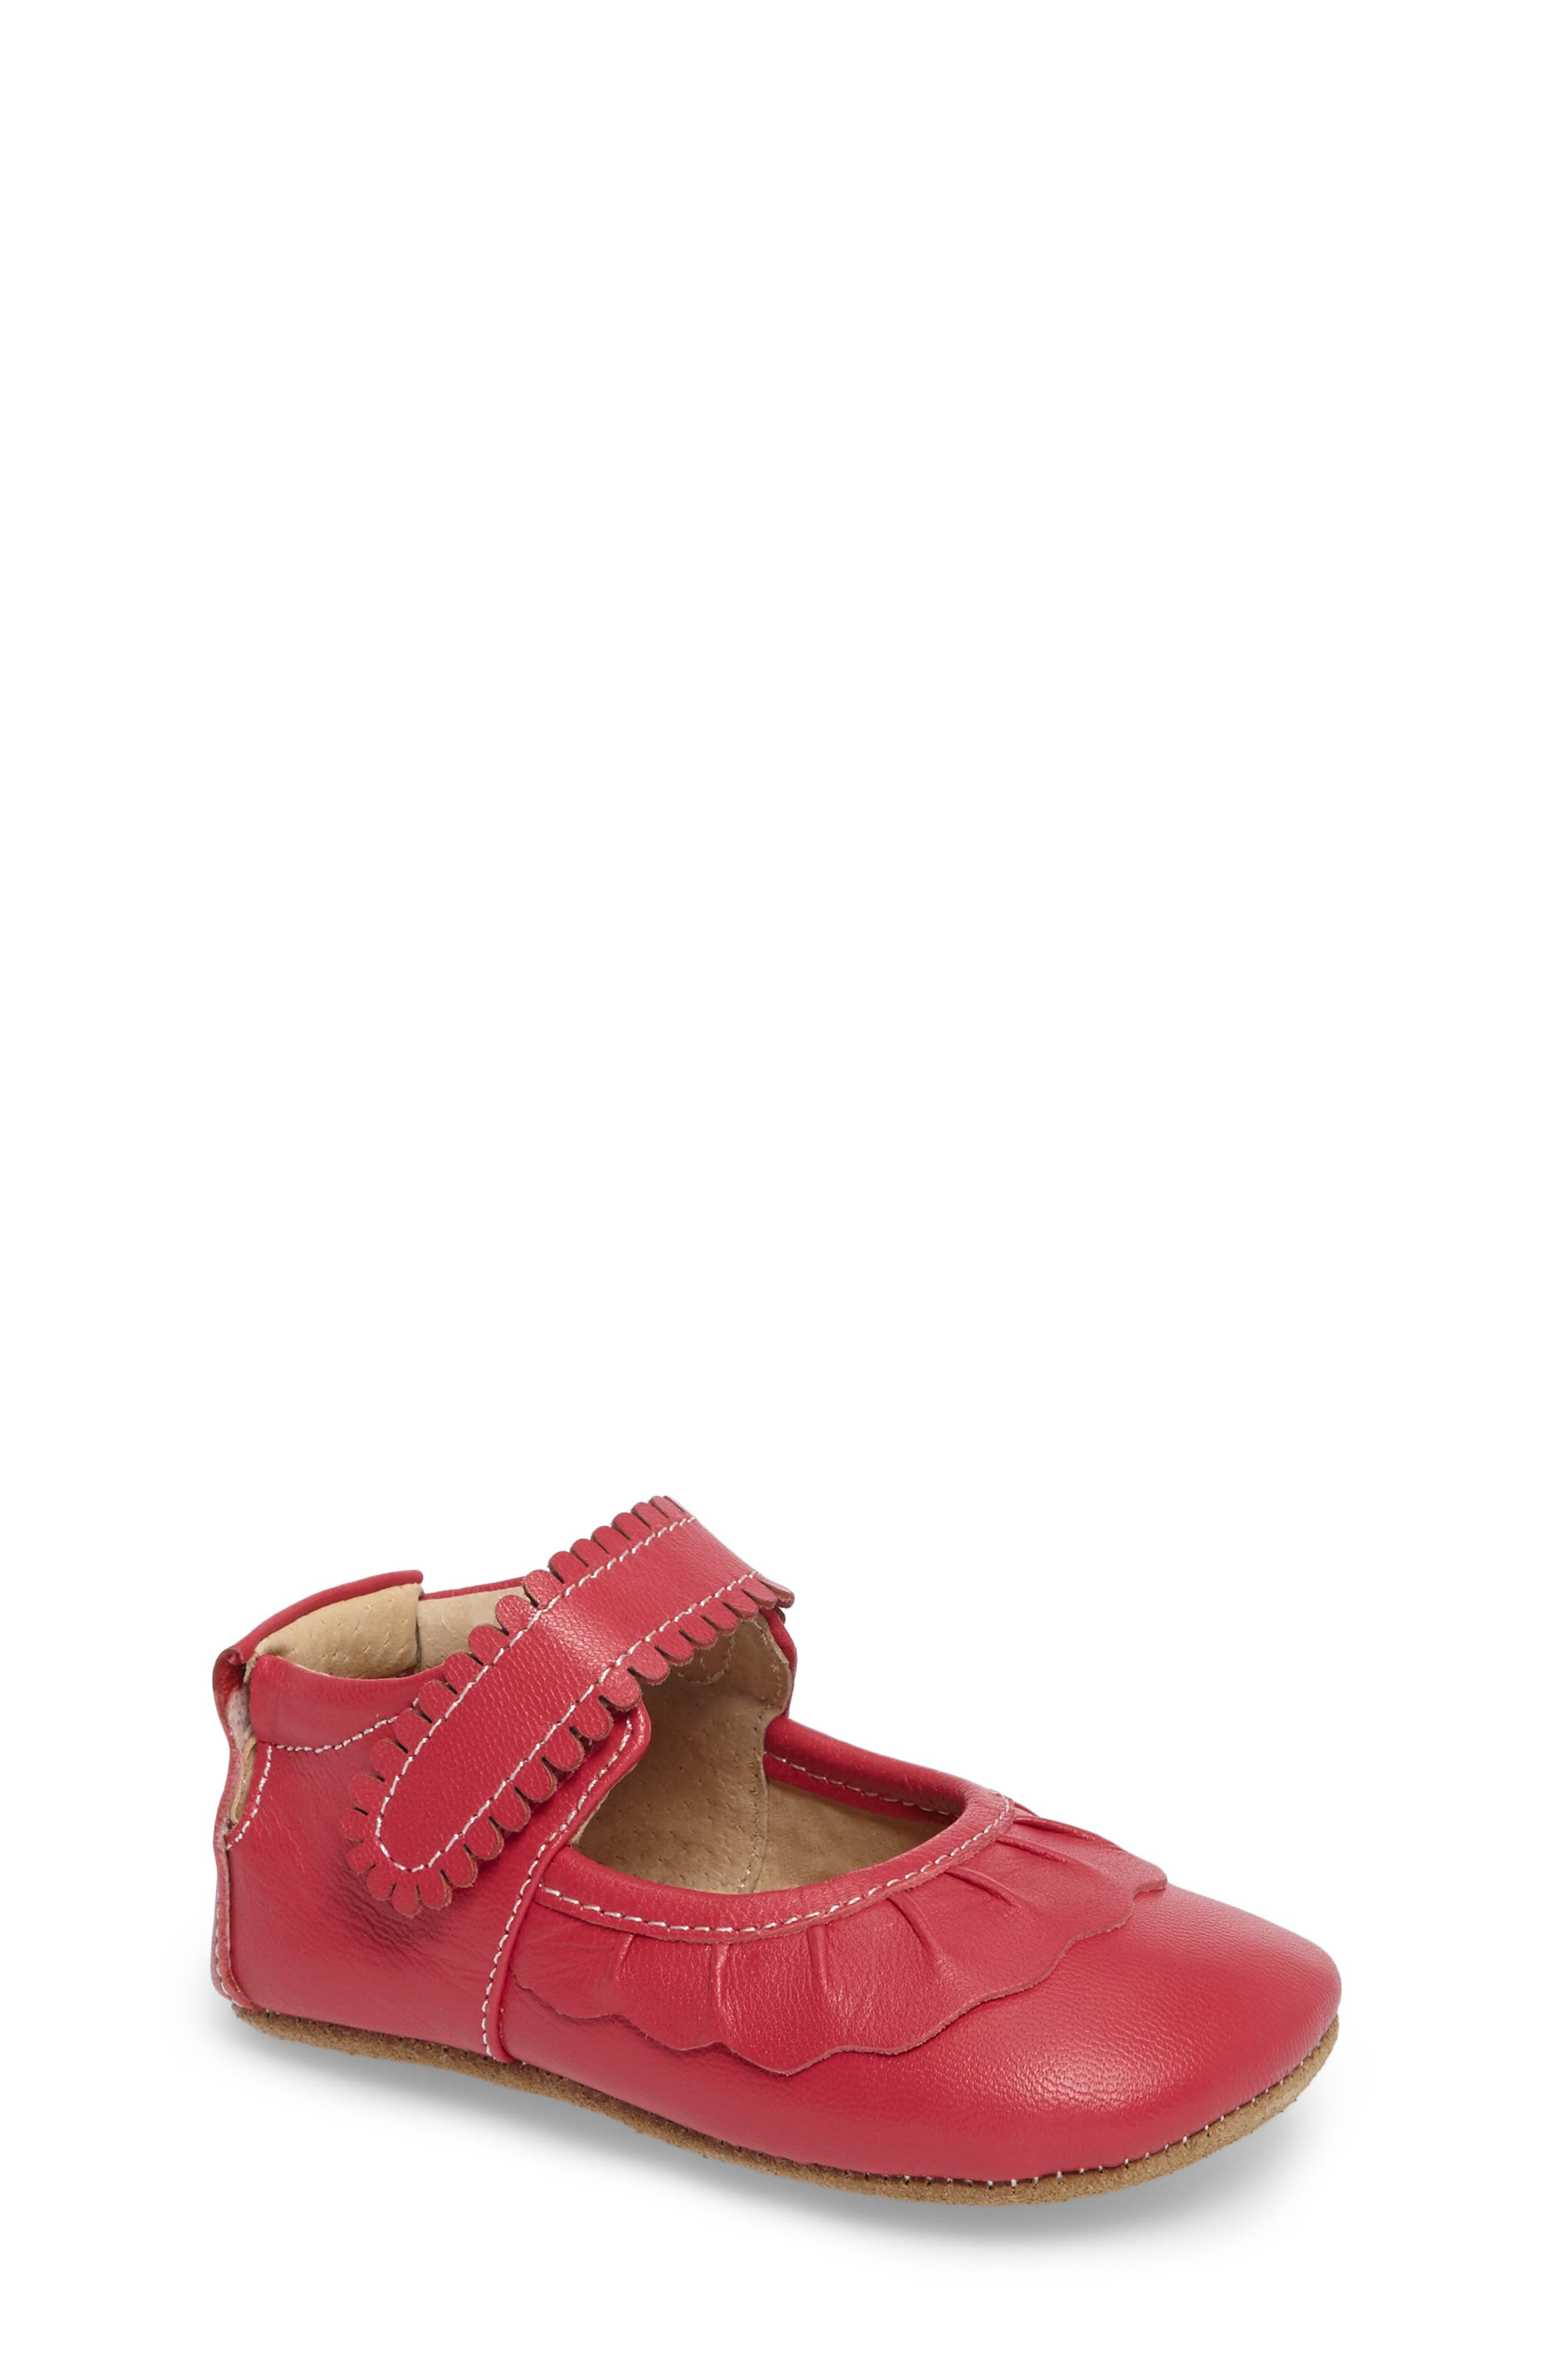 'Ruche' Mary Jane Crib Shoe,                             Main thumbnail 1, color,                             HOT PINK LEATHER